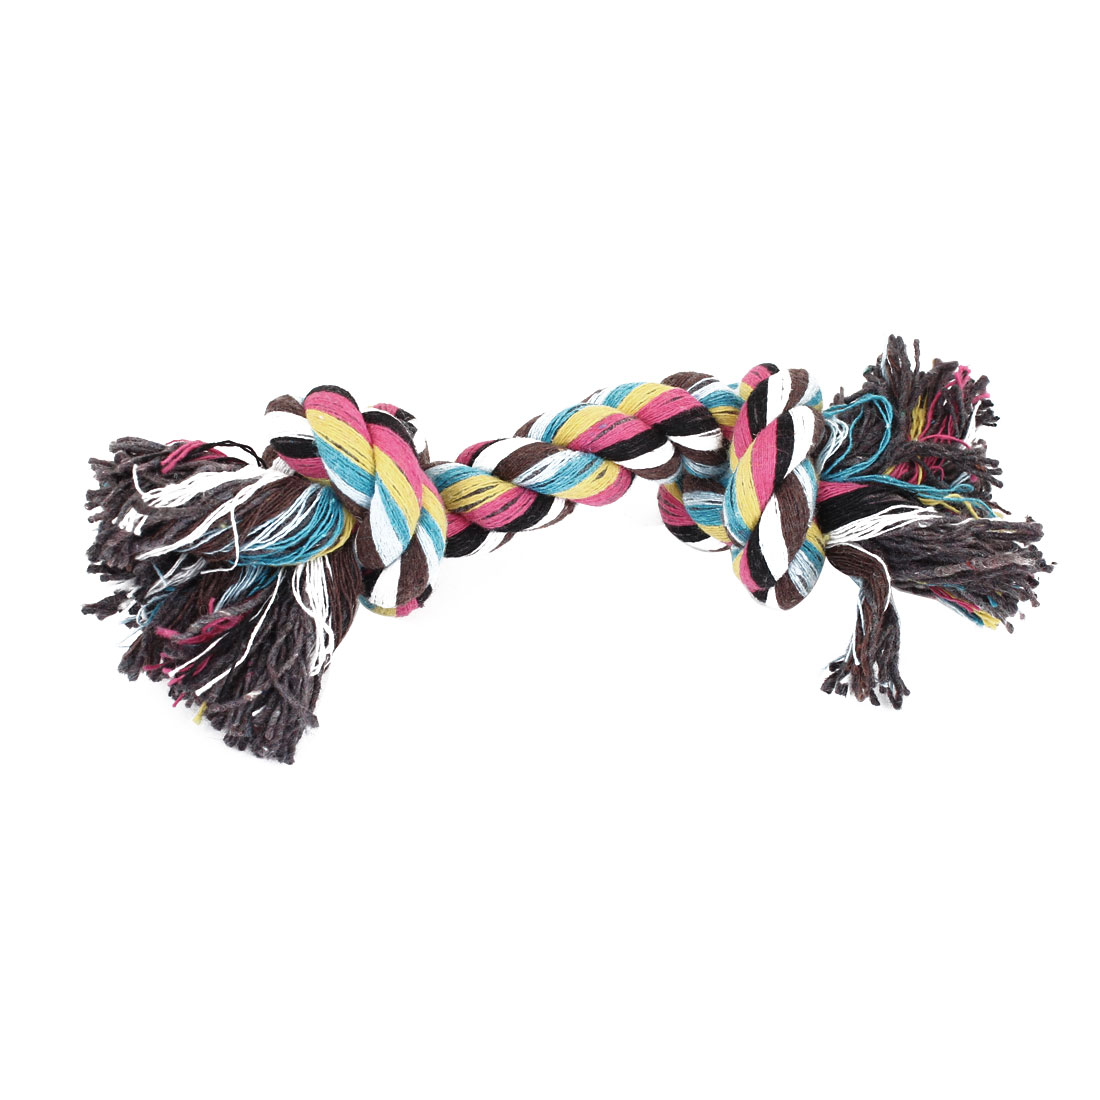 Family Dogs Pets Braided Rope Bone Chew Tug Toy Tool Multicolor 18cm Length